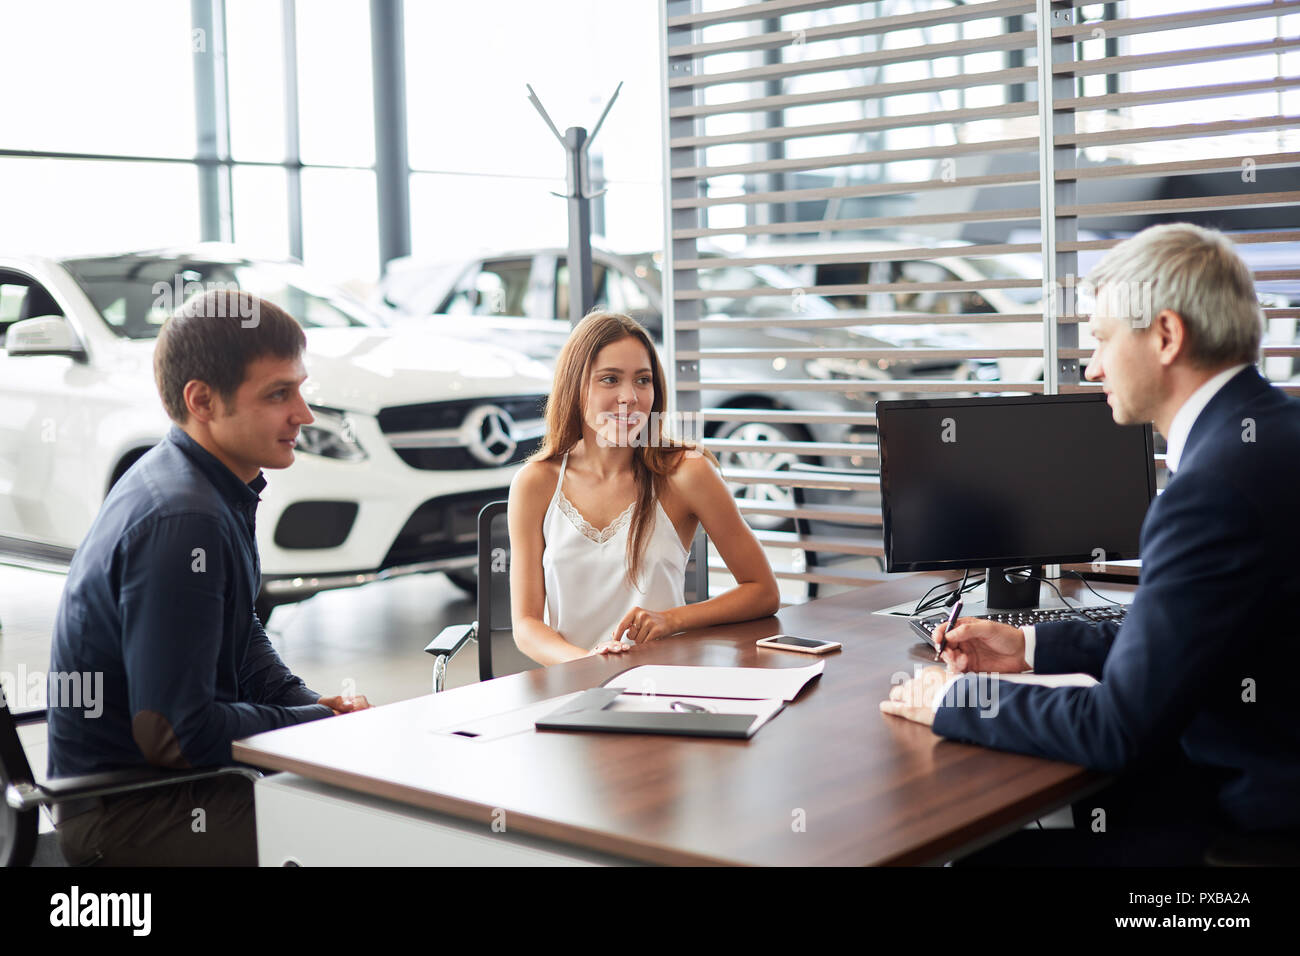 Mature sales manager signing contract with clients at car dealership office - Stock Image